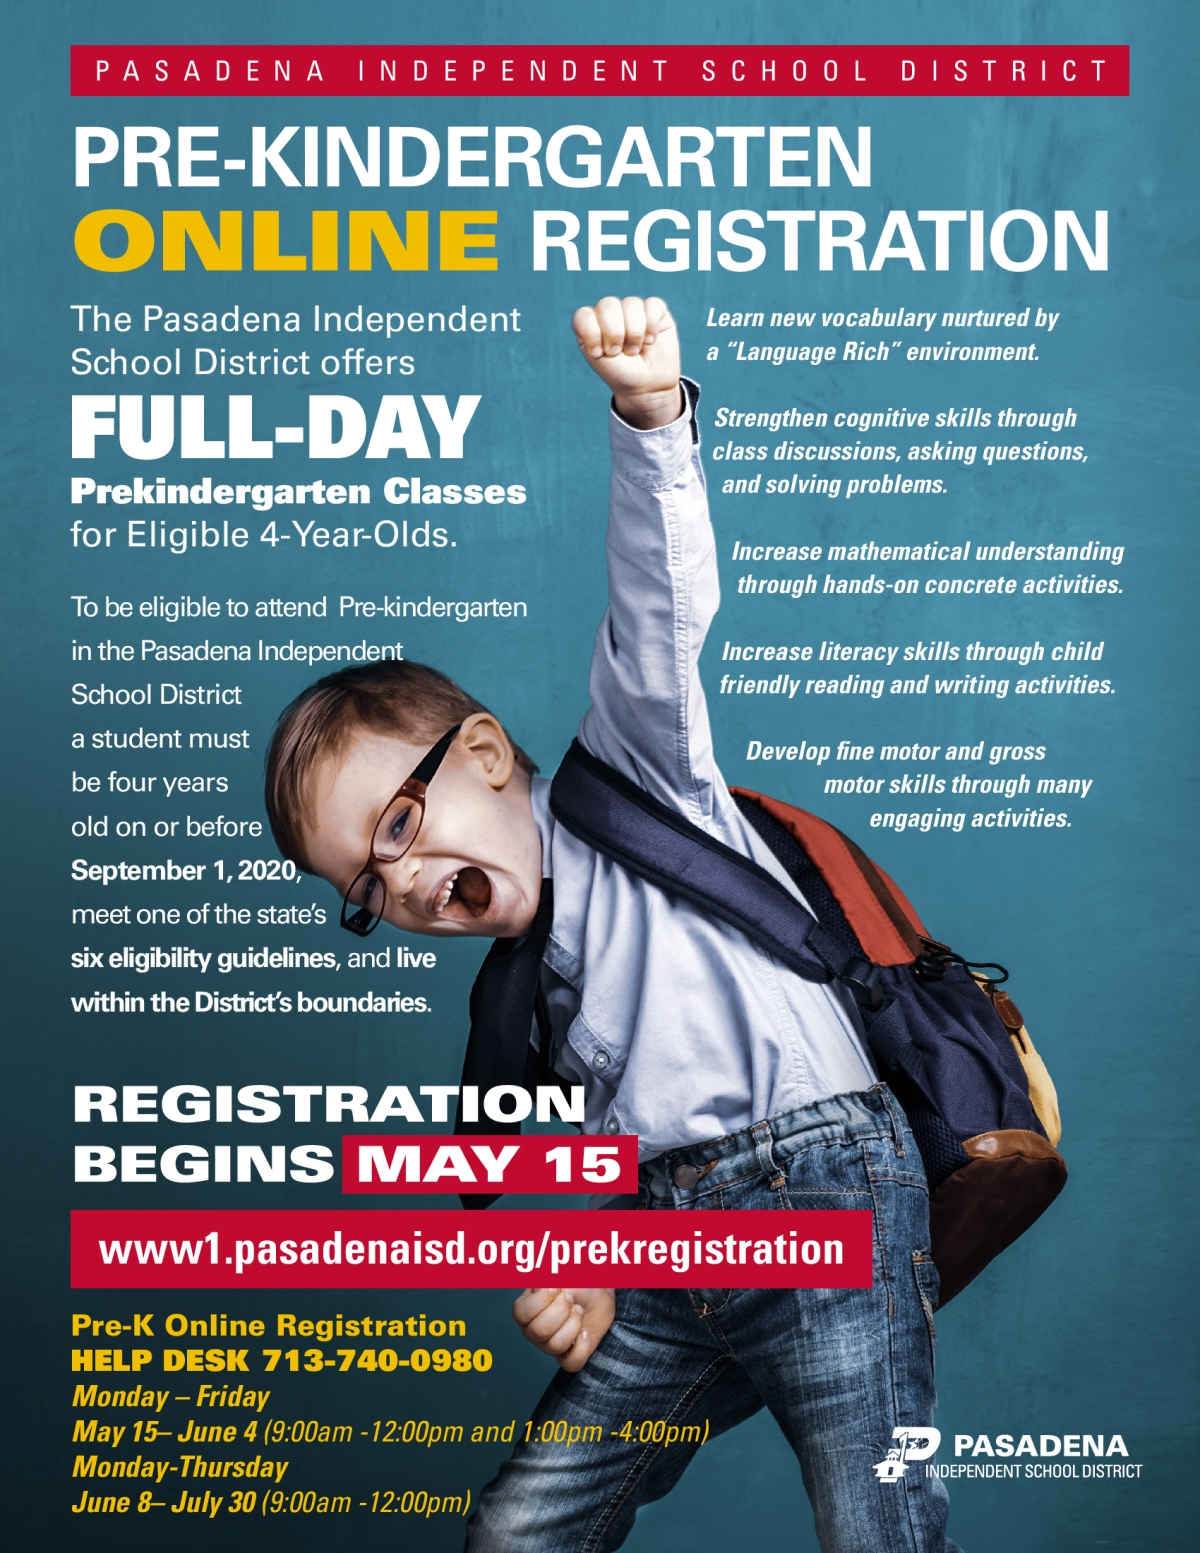 Pre-Kindergarten Online Registration